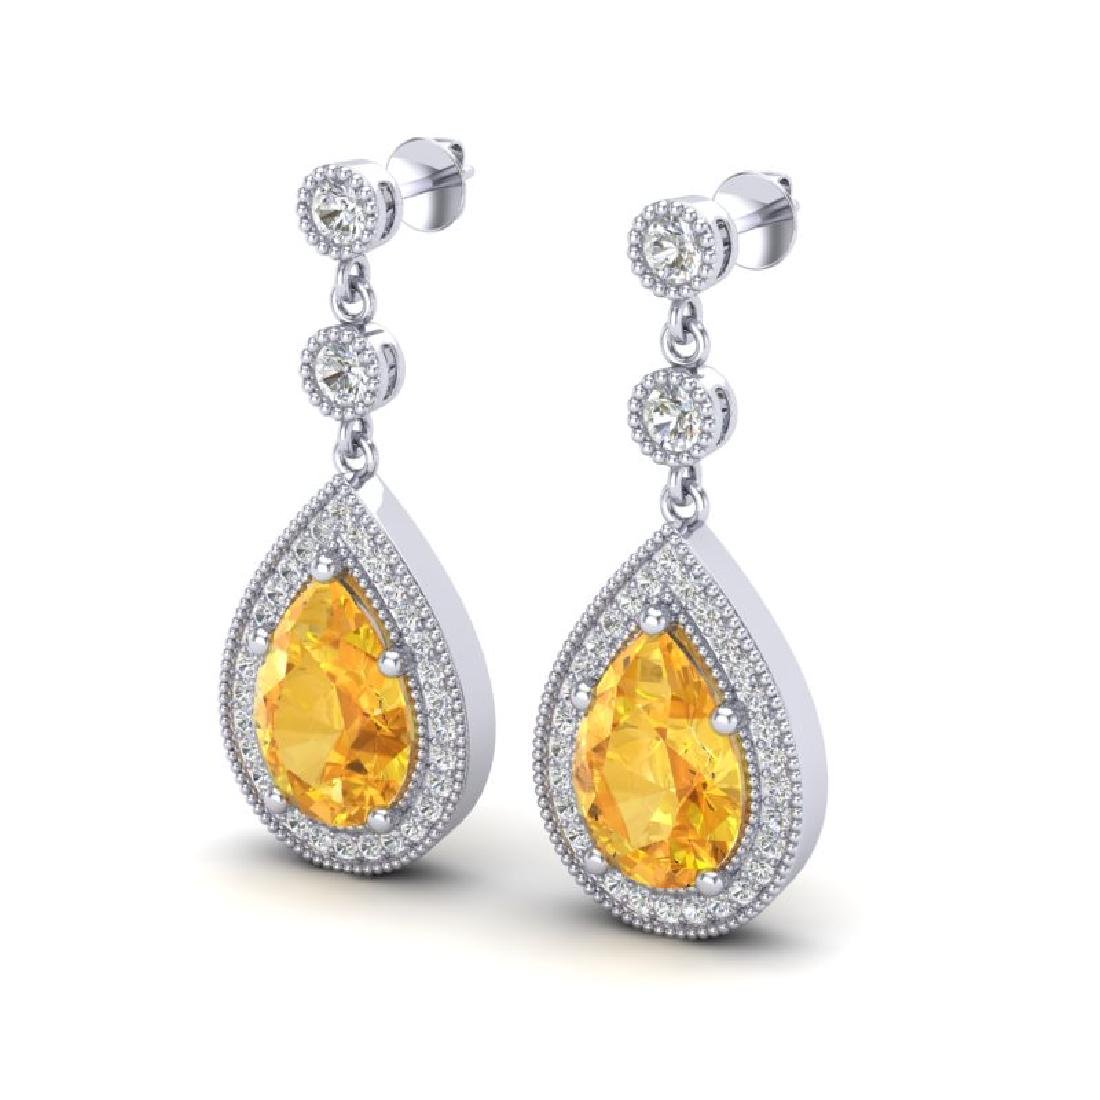 4.50 CTW Citrine & Micro VS/SI Diamond Earrings